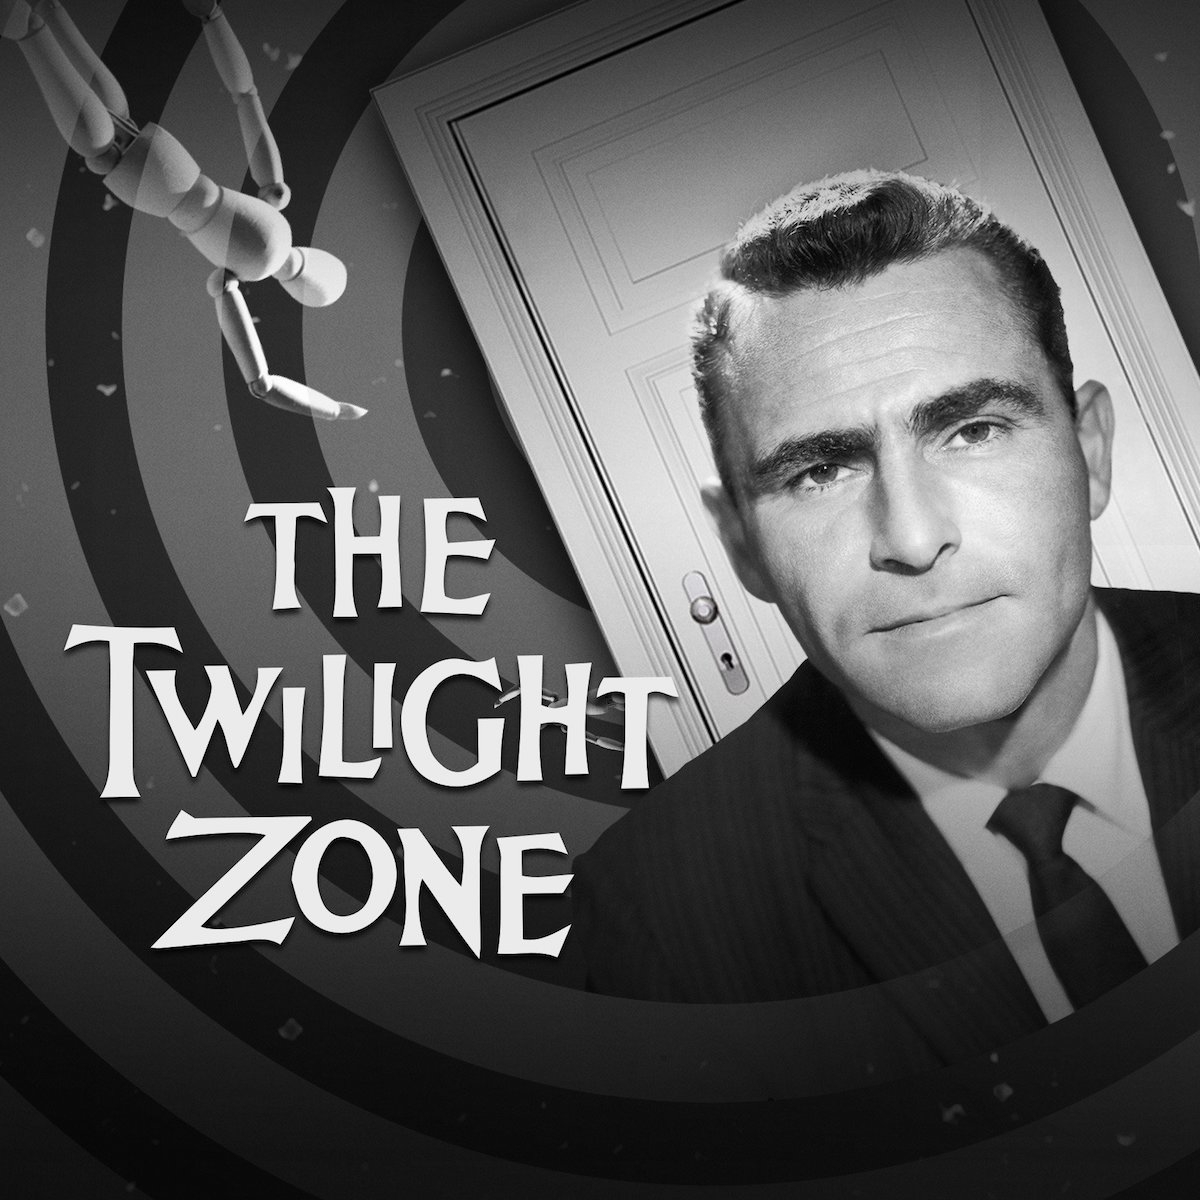 2019-Rittenhouse-Twilight-Zone-Rod-Serling-Edition-Trading-Cards-thumb-1200.jpeg